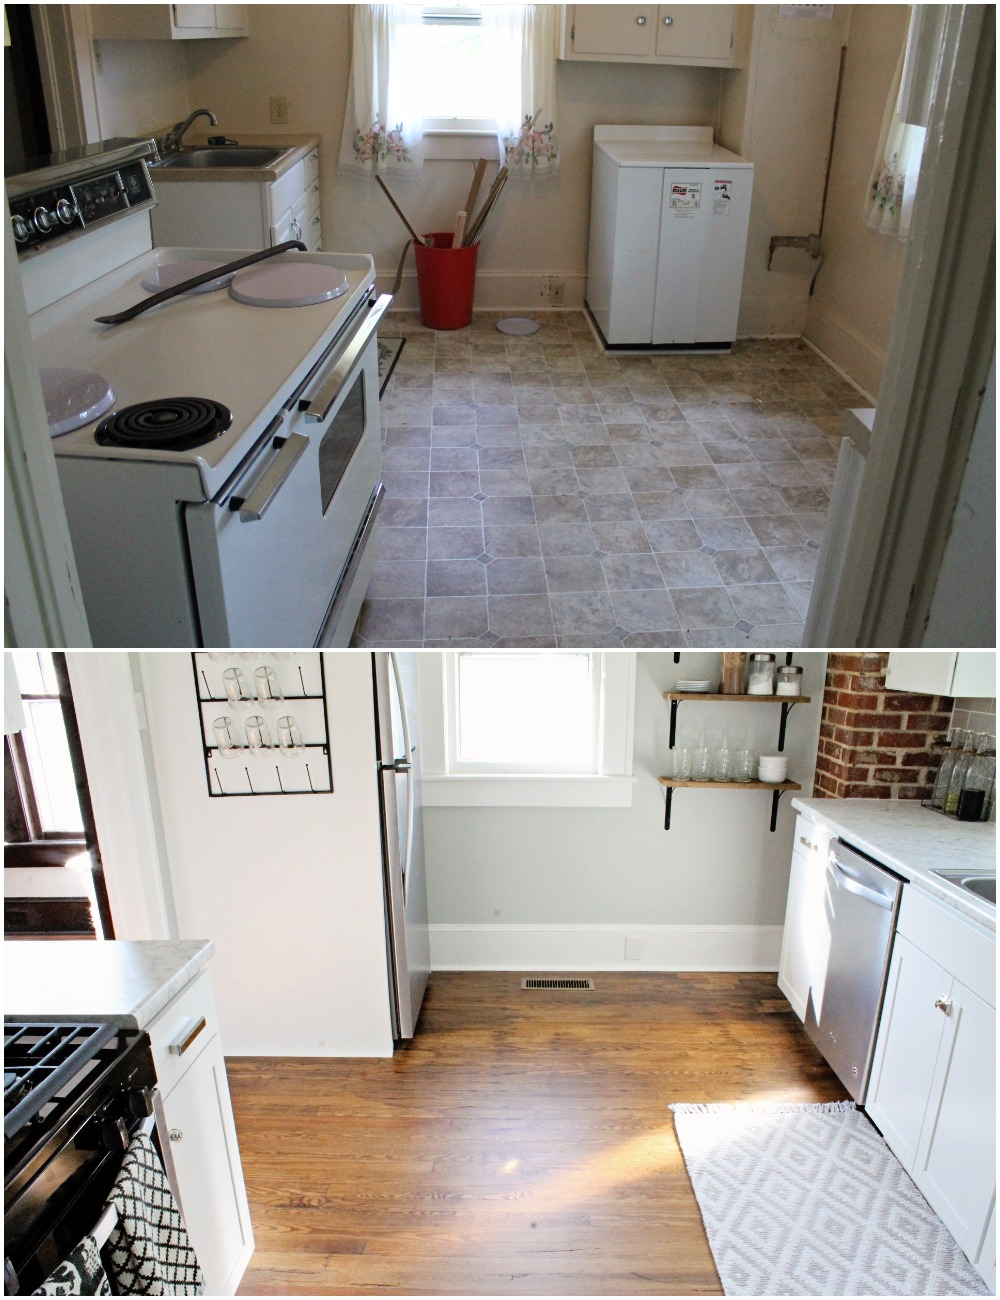 House Flipping Before and Afters - DIY BUDGET KITCHEN IDEAS WHITE SHAKER CABINETS (2).jpg